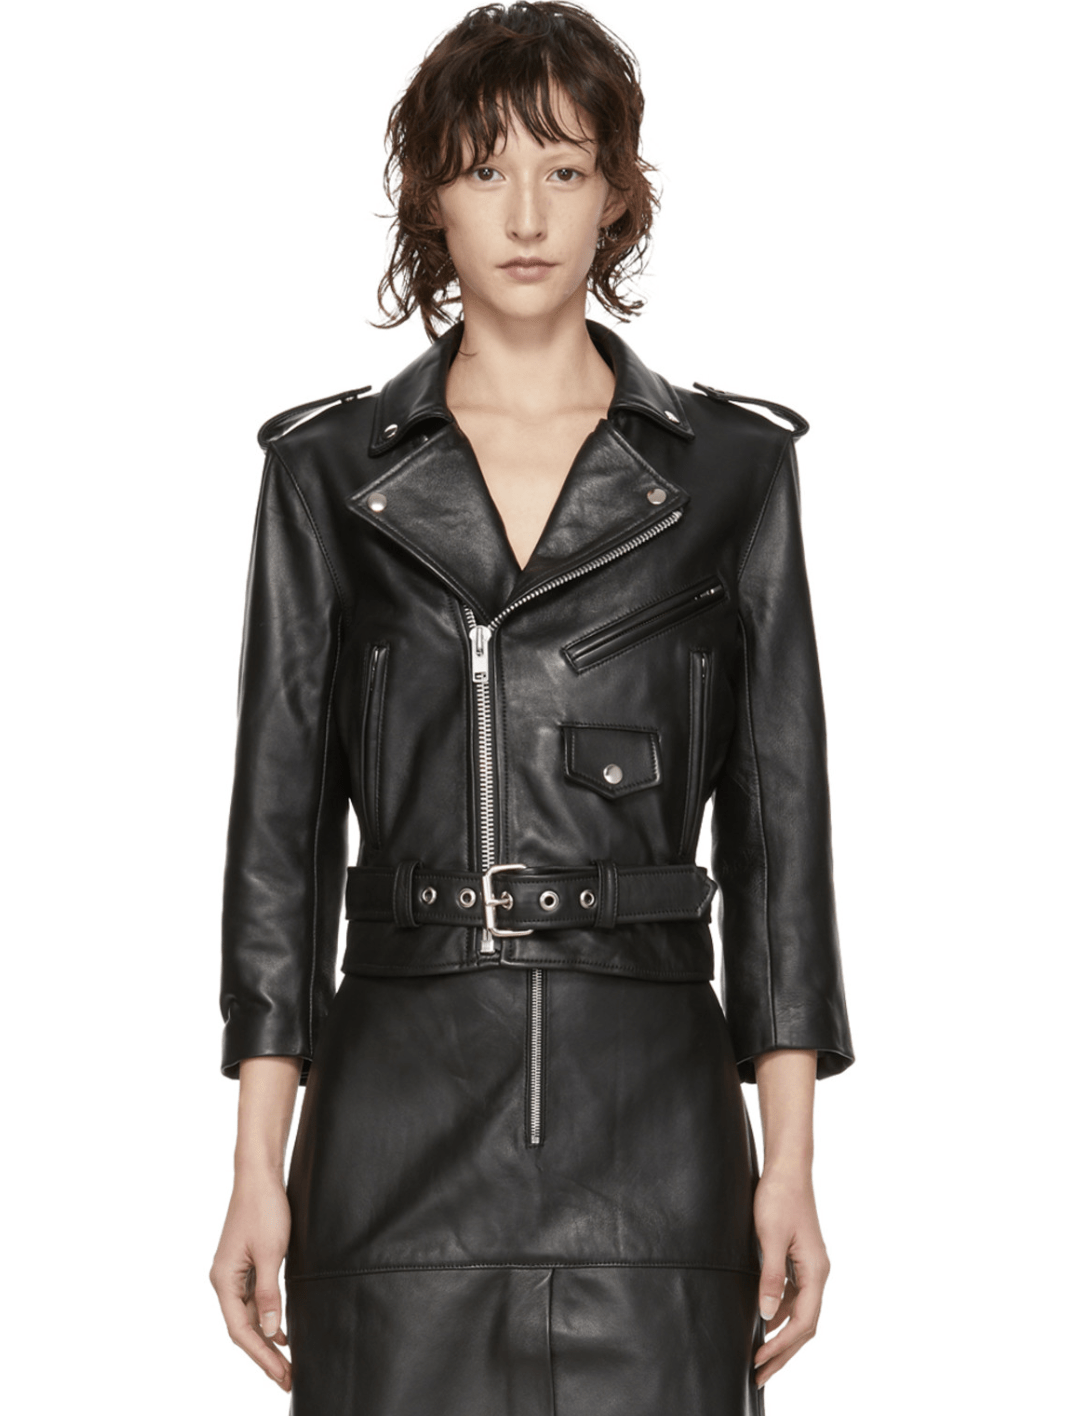 Markoo Leather Jacket